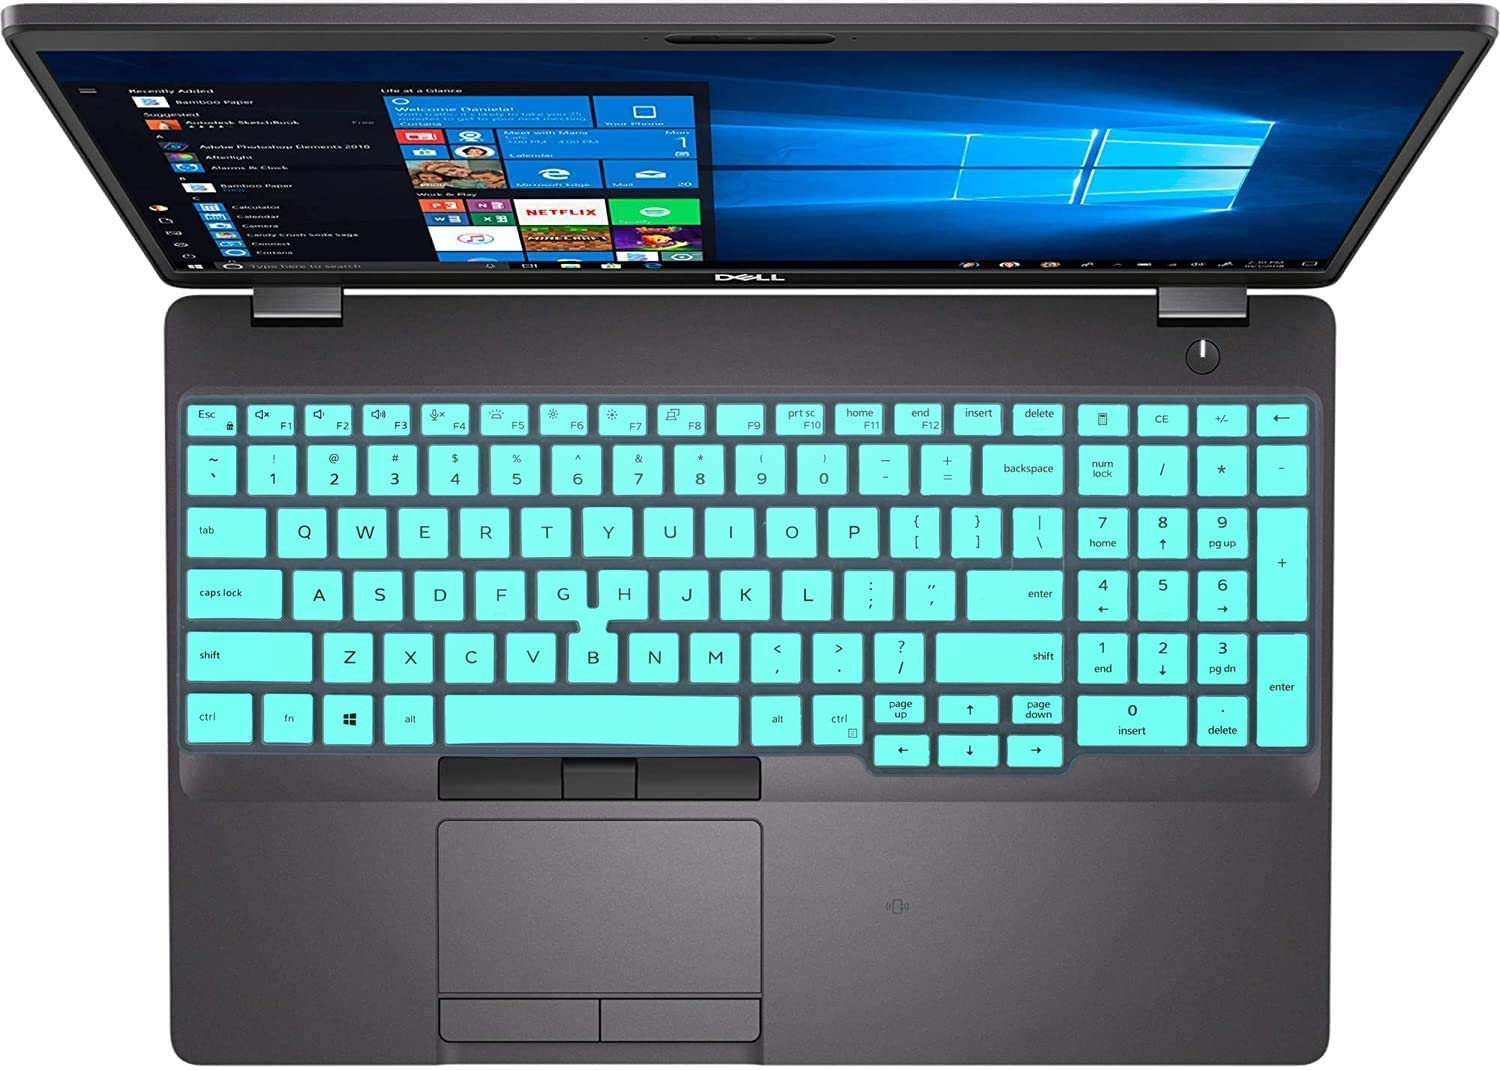 Keyboard Cover for 2020 2019 Dell Latitude 5500 5501 15.6